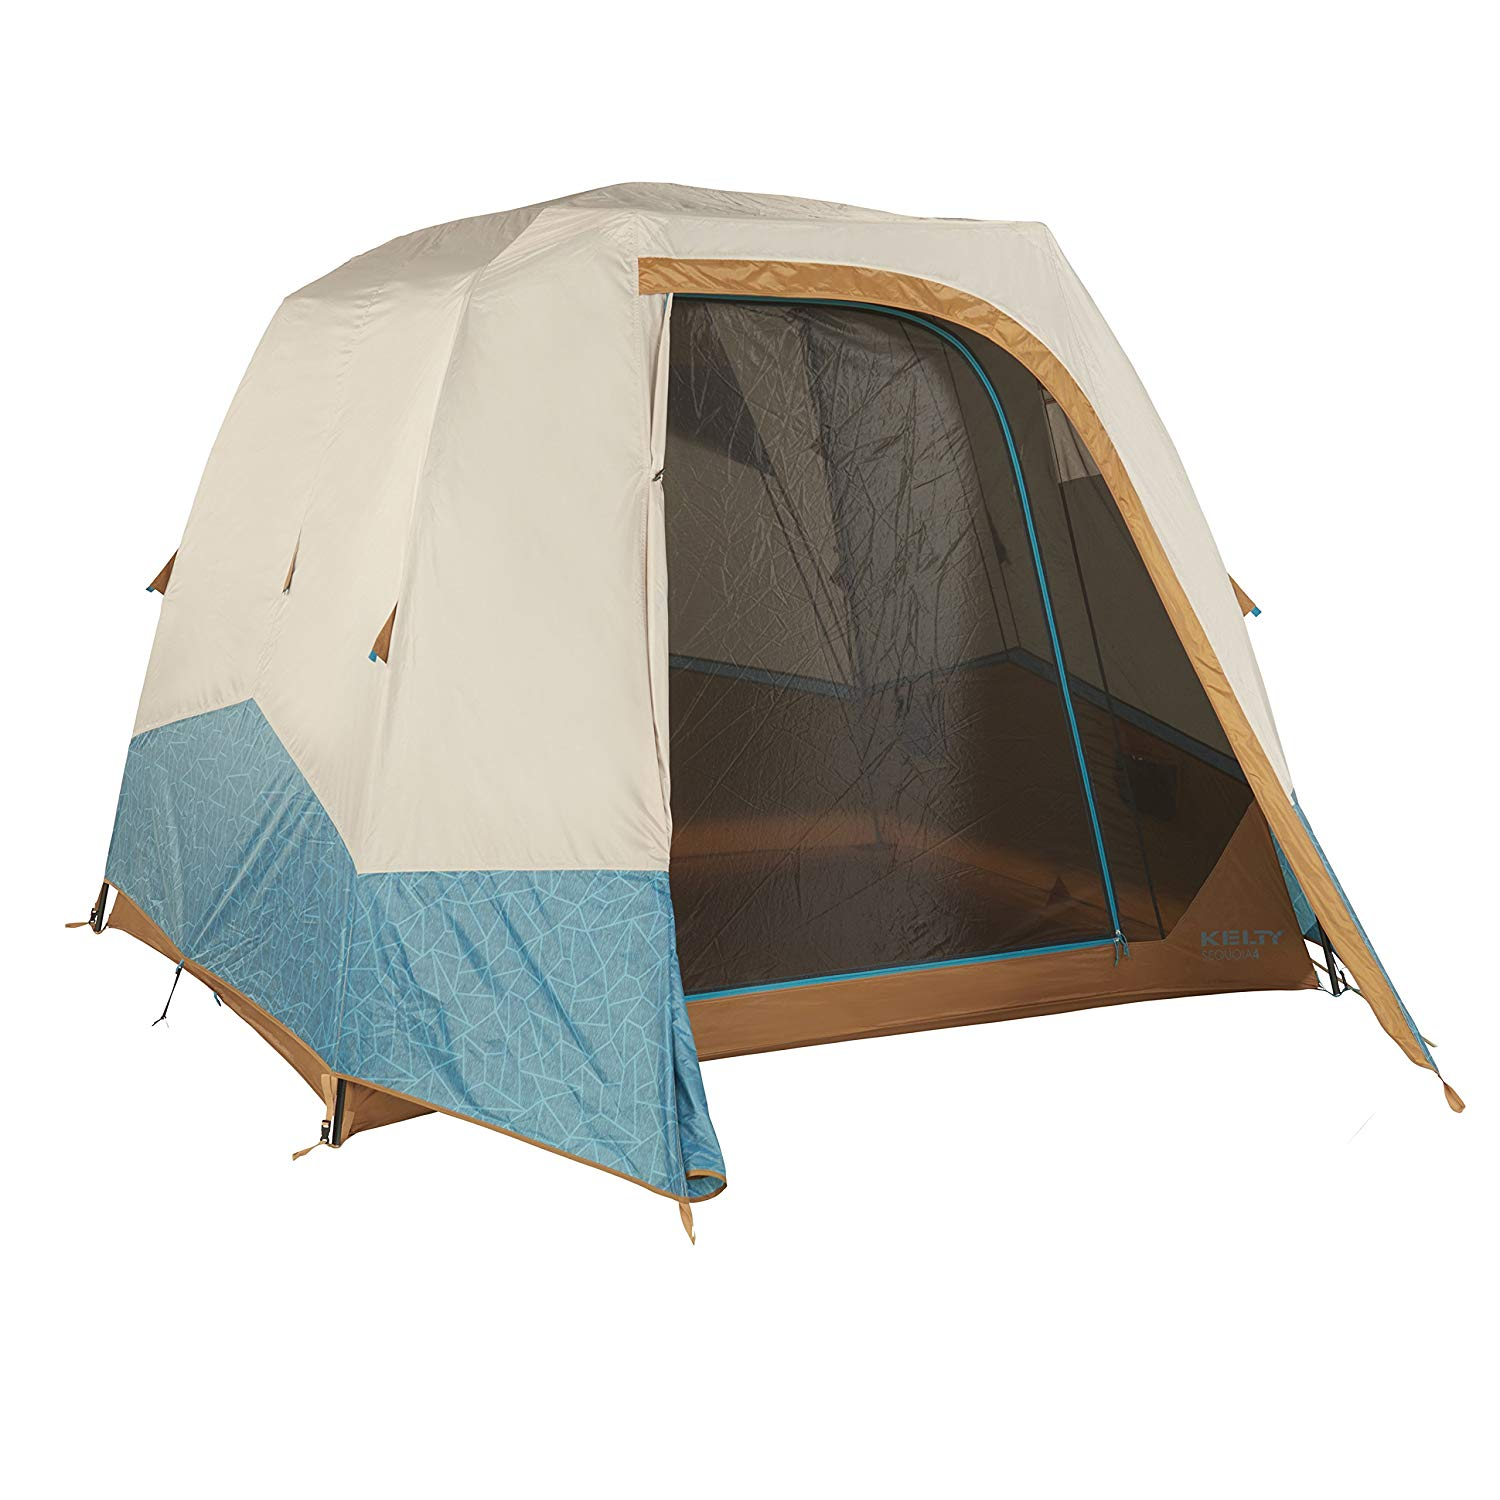 Kelty Sequoia 4 and 6 Person Camping Tents: